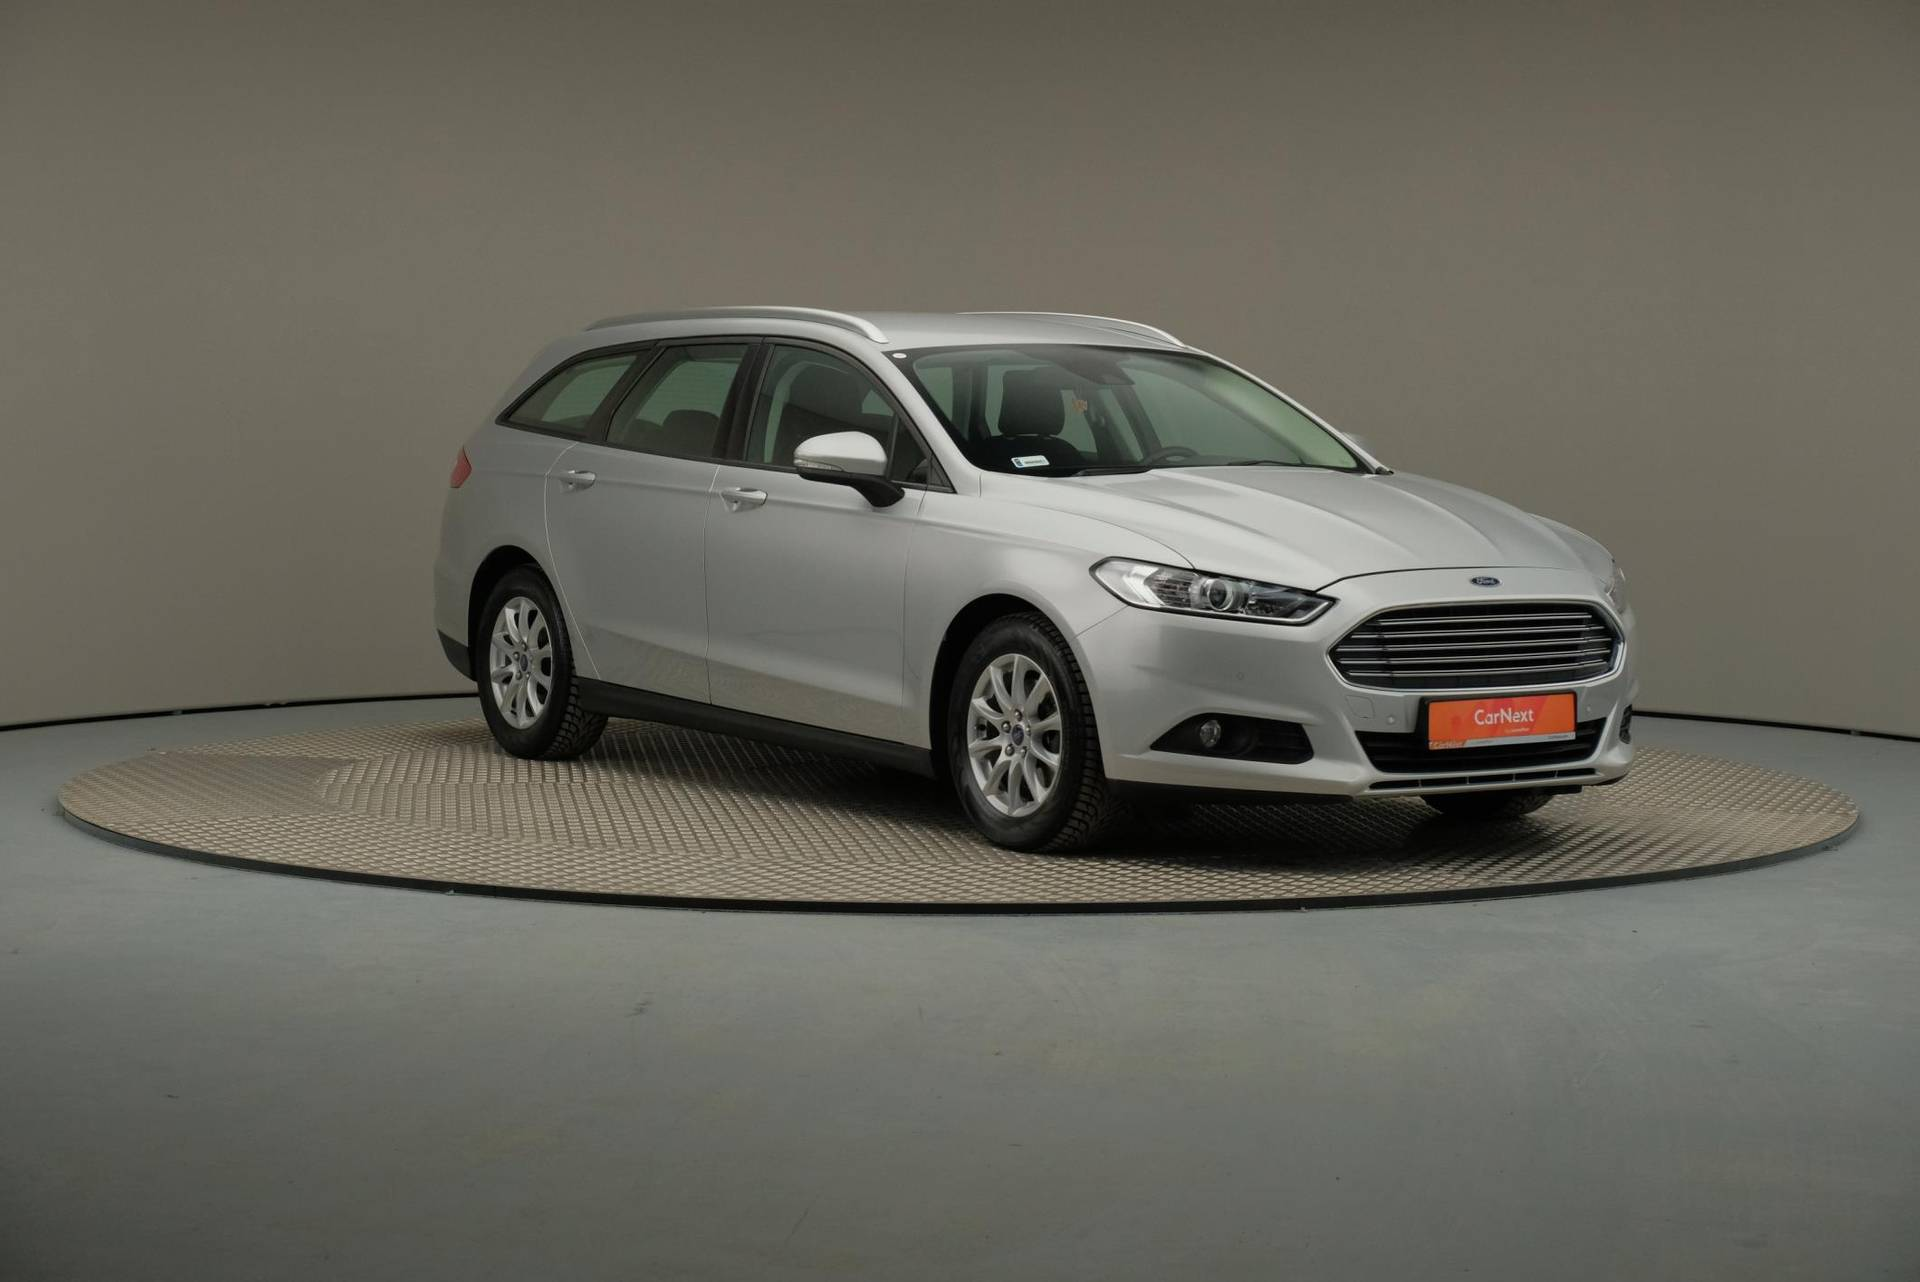 Ford Mondeo Turnier 1.5 Eco Boost Start-Stopp, Trend, 360-image28